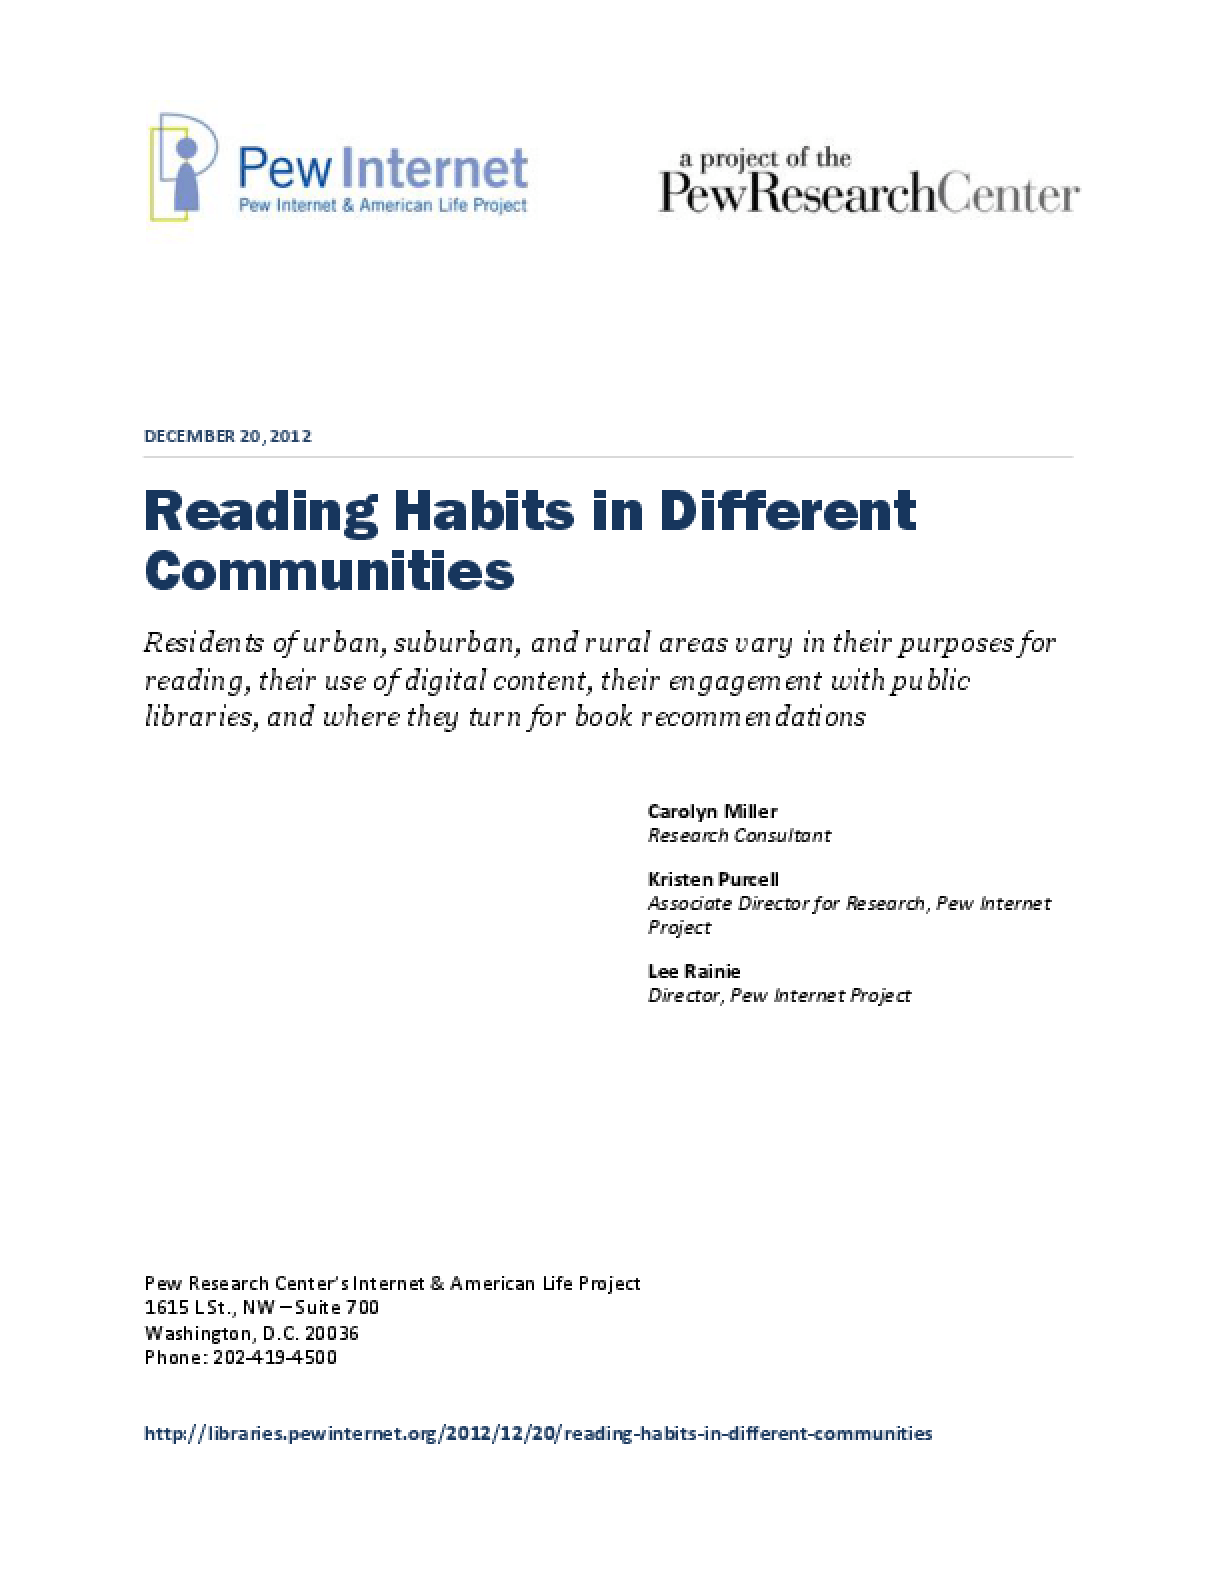 Reading Habits in Different Communities